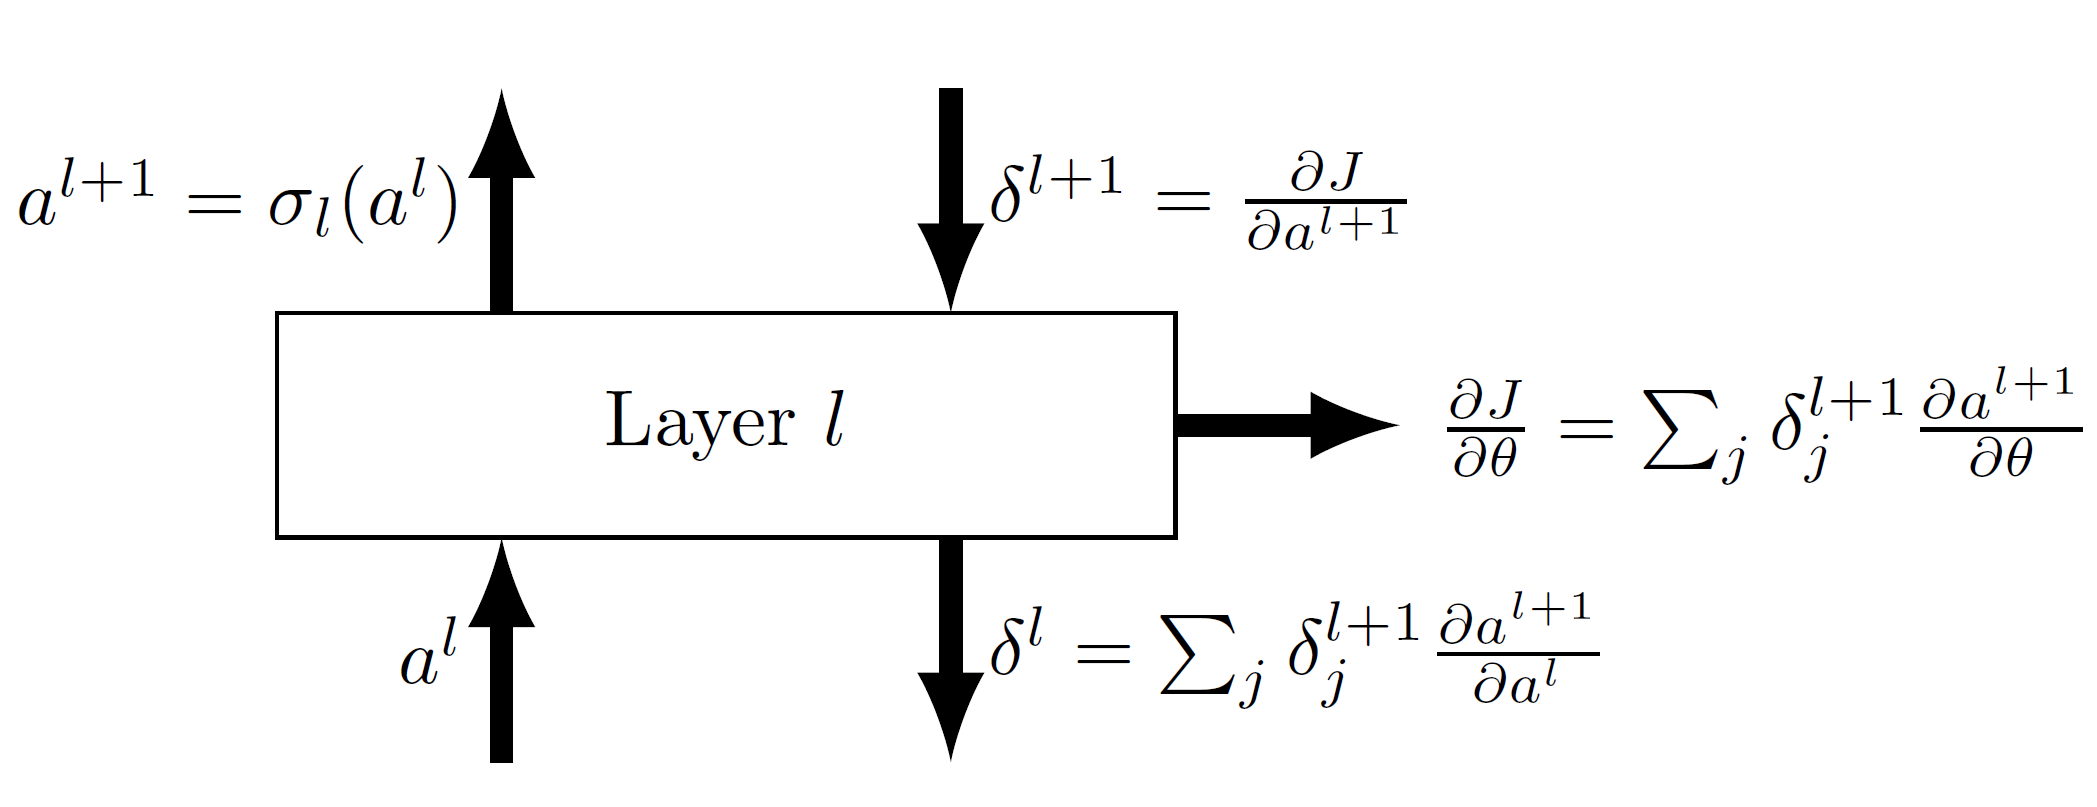 Backpropagation in Artificial Neural Networks